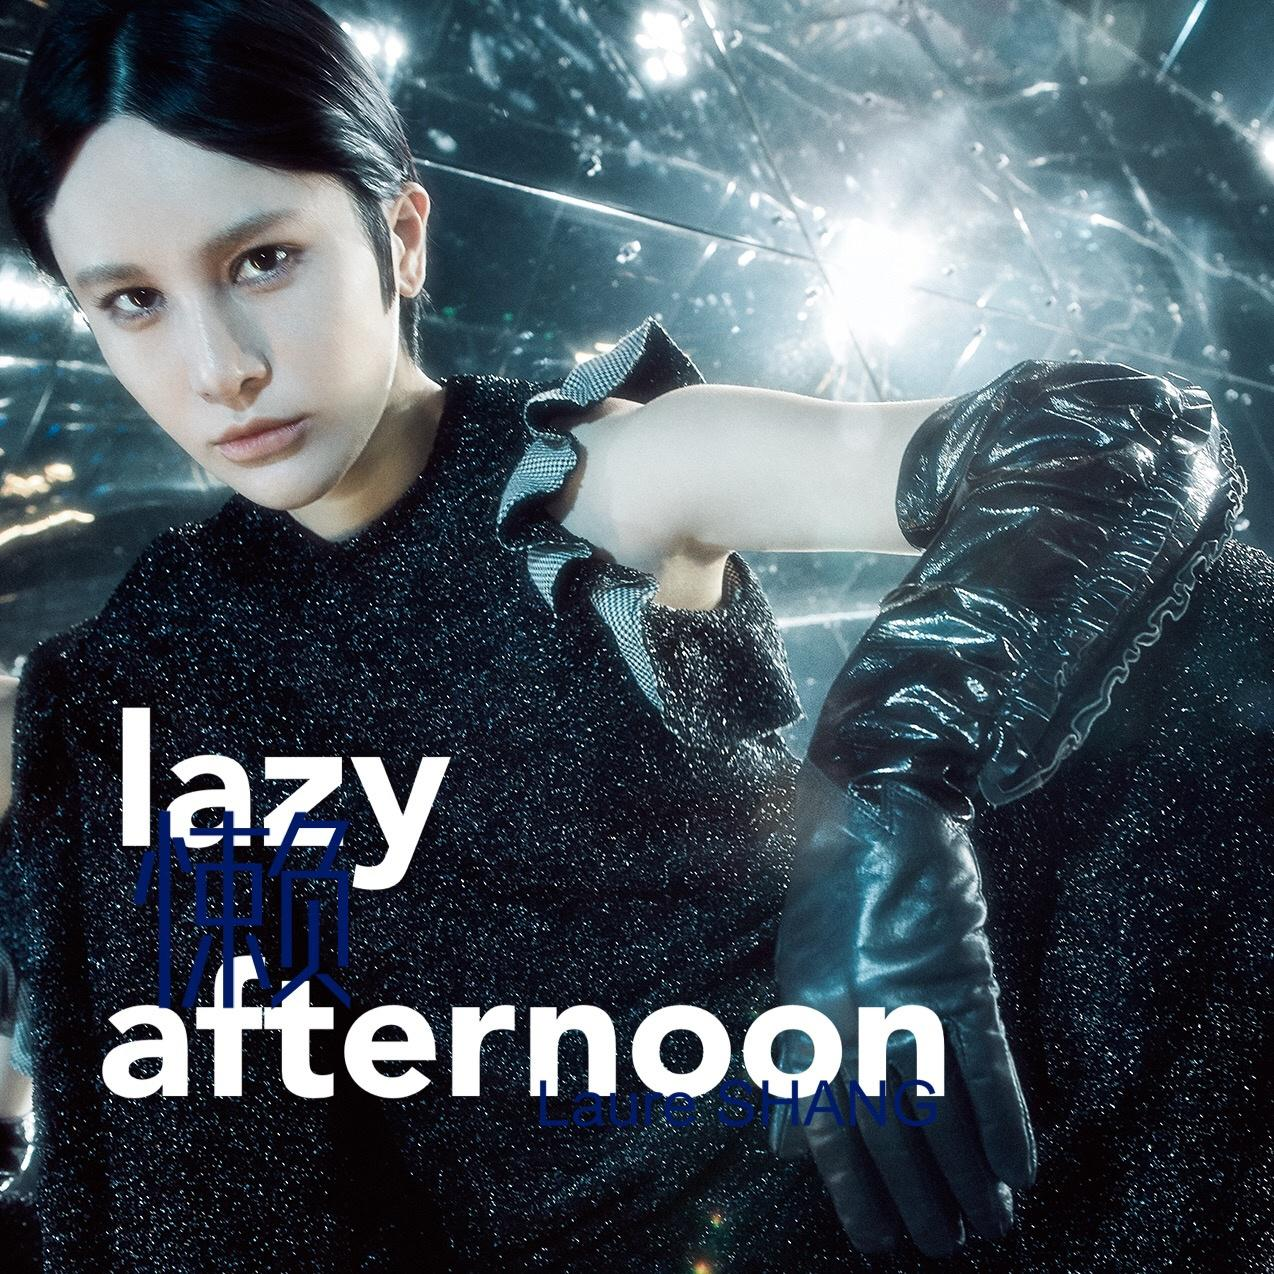 lazy afternoon 懒